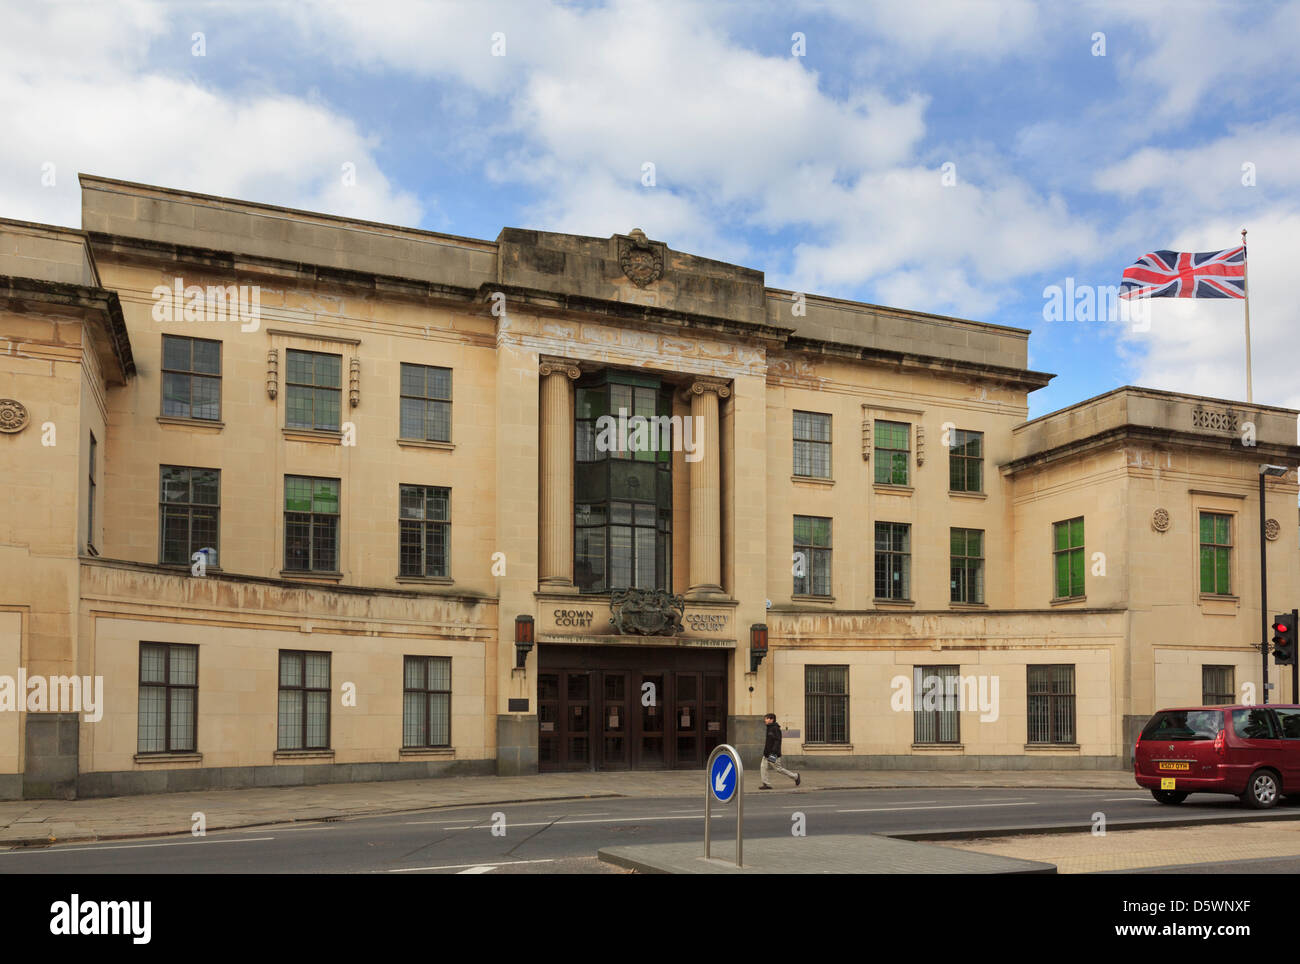 Crown Court and County Court building in Oxford, Oxfordshire, England, UK, Britain - Stock Image